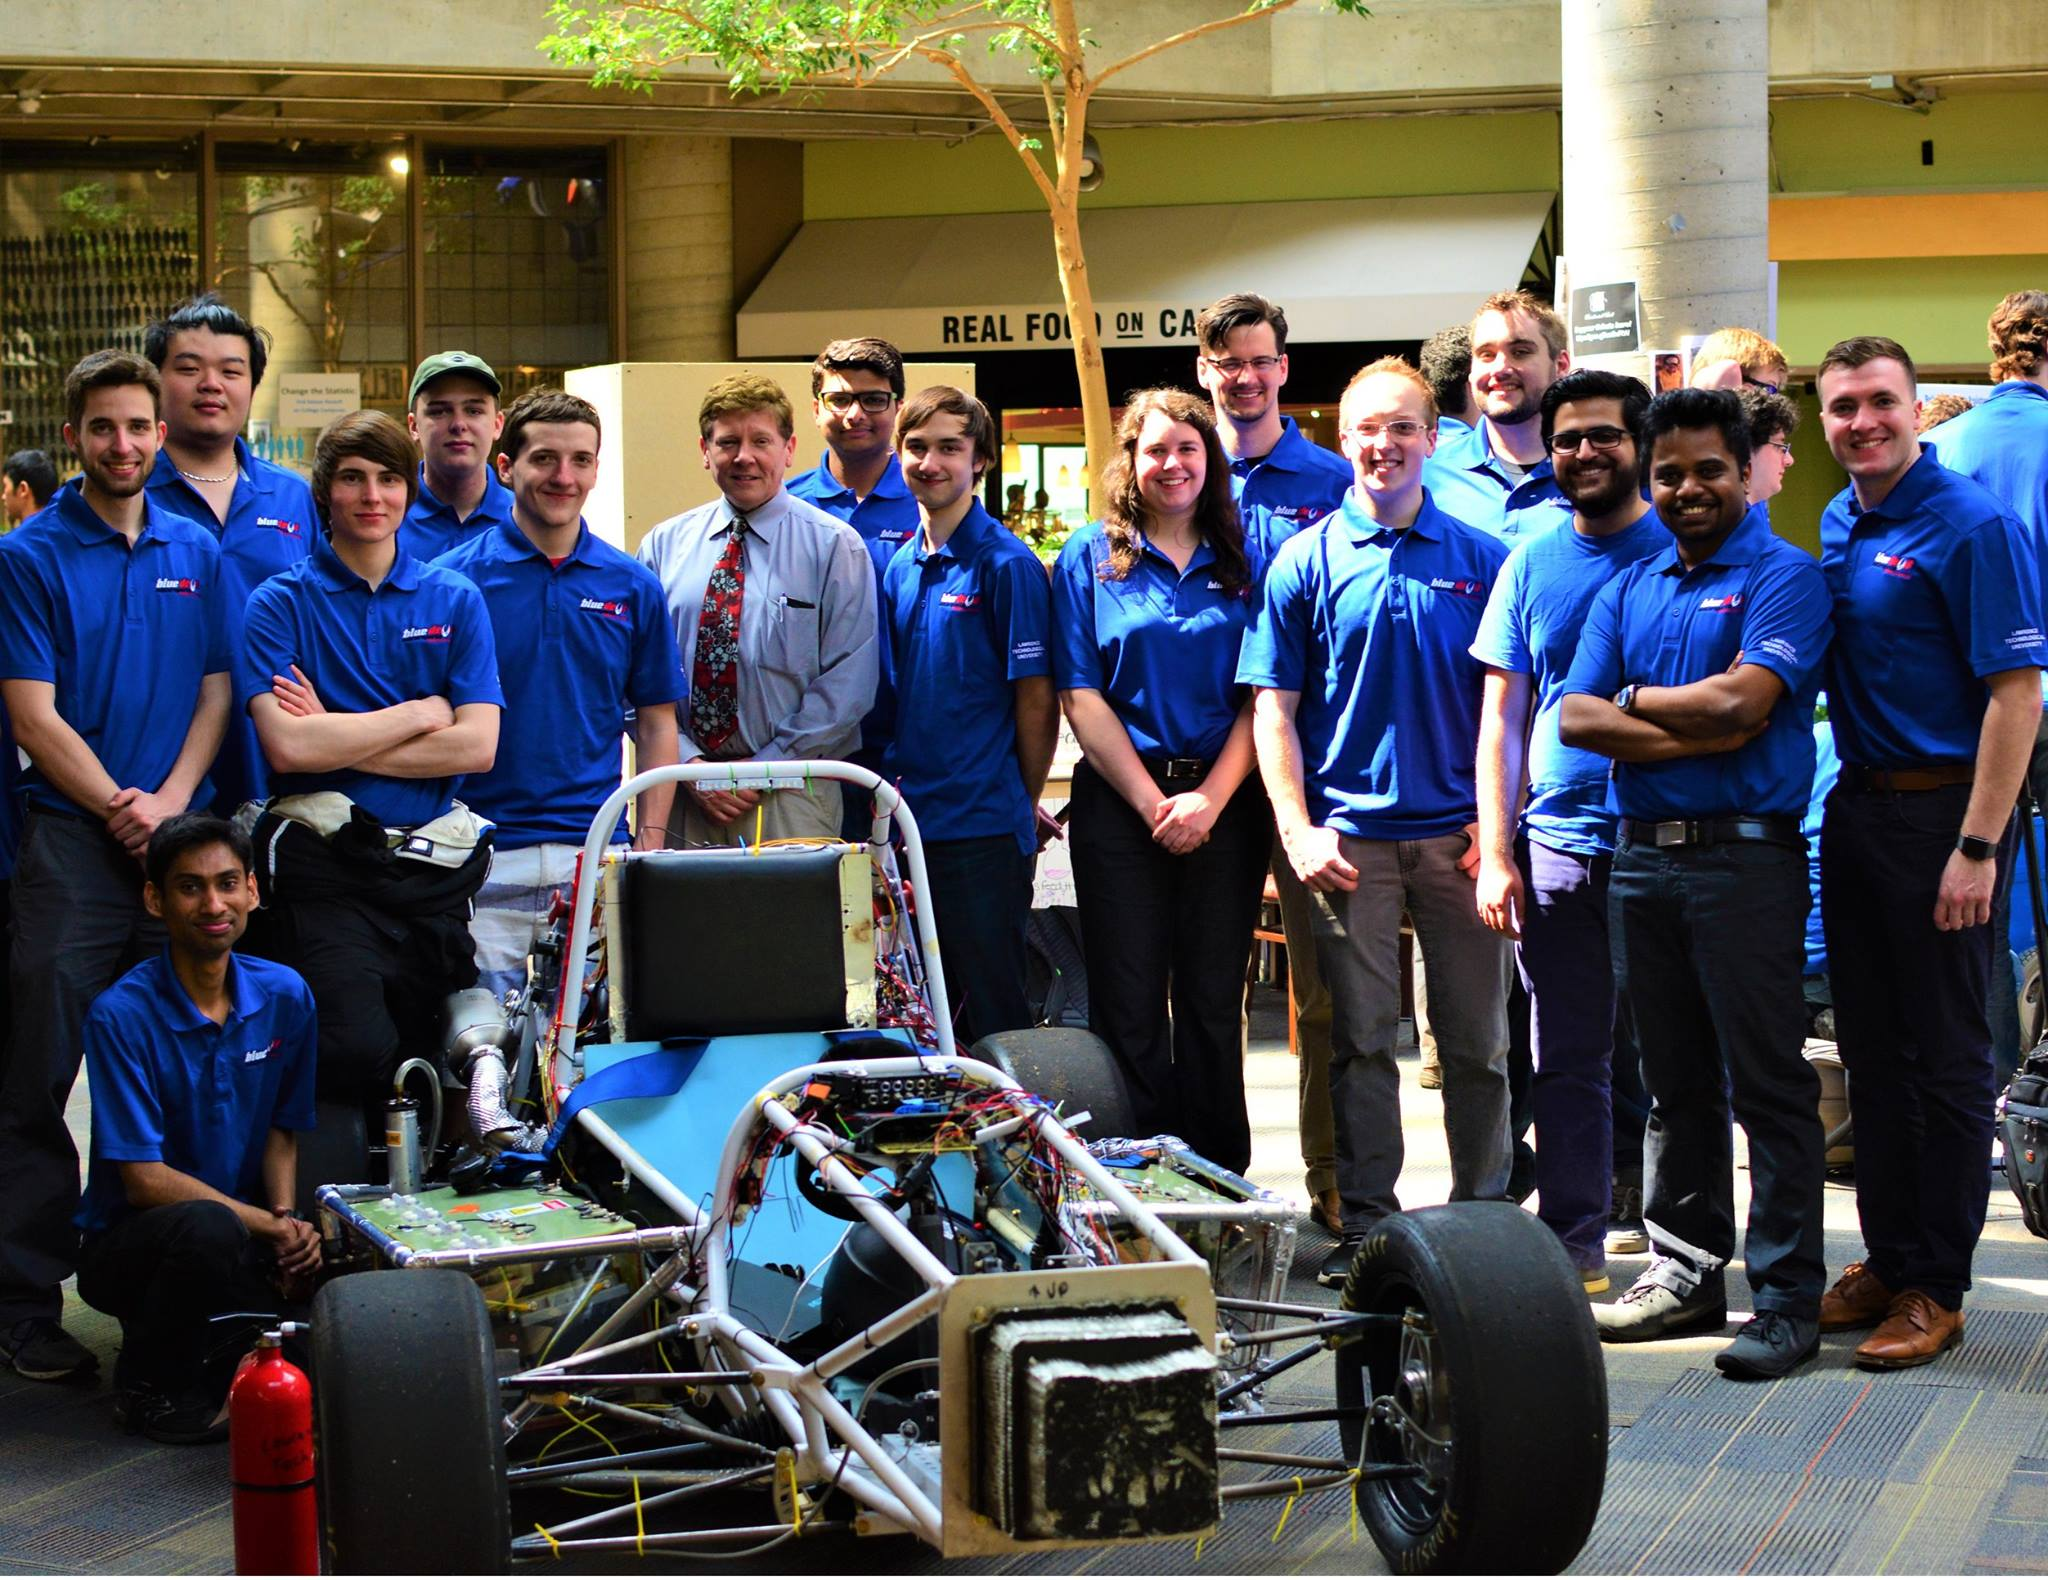 Congrats to Lawrence Technological University @LawrenceTechU for taking 6th in hybrid at #FormulaHybrid17! https://t.co/r84B5vt2JK